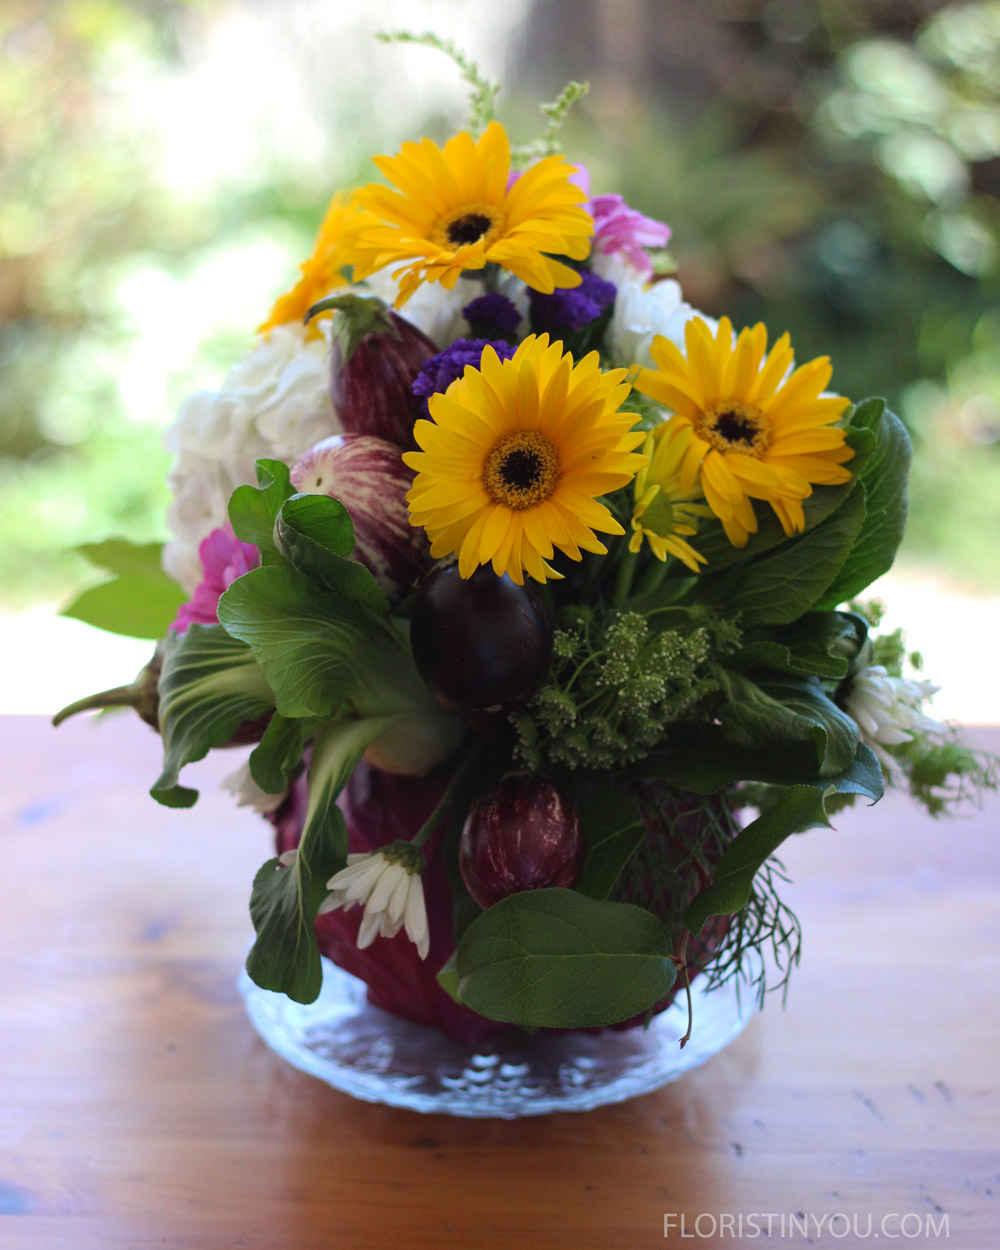 Put some of the yellow Gerbers and purple Cosmos down the center line of the arrangement. The side should look like this.